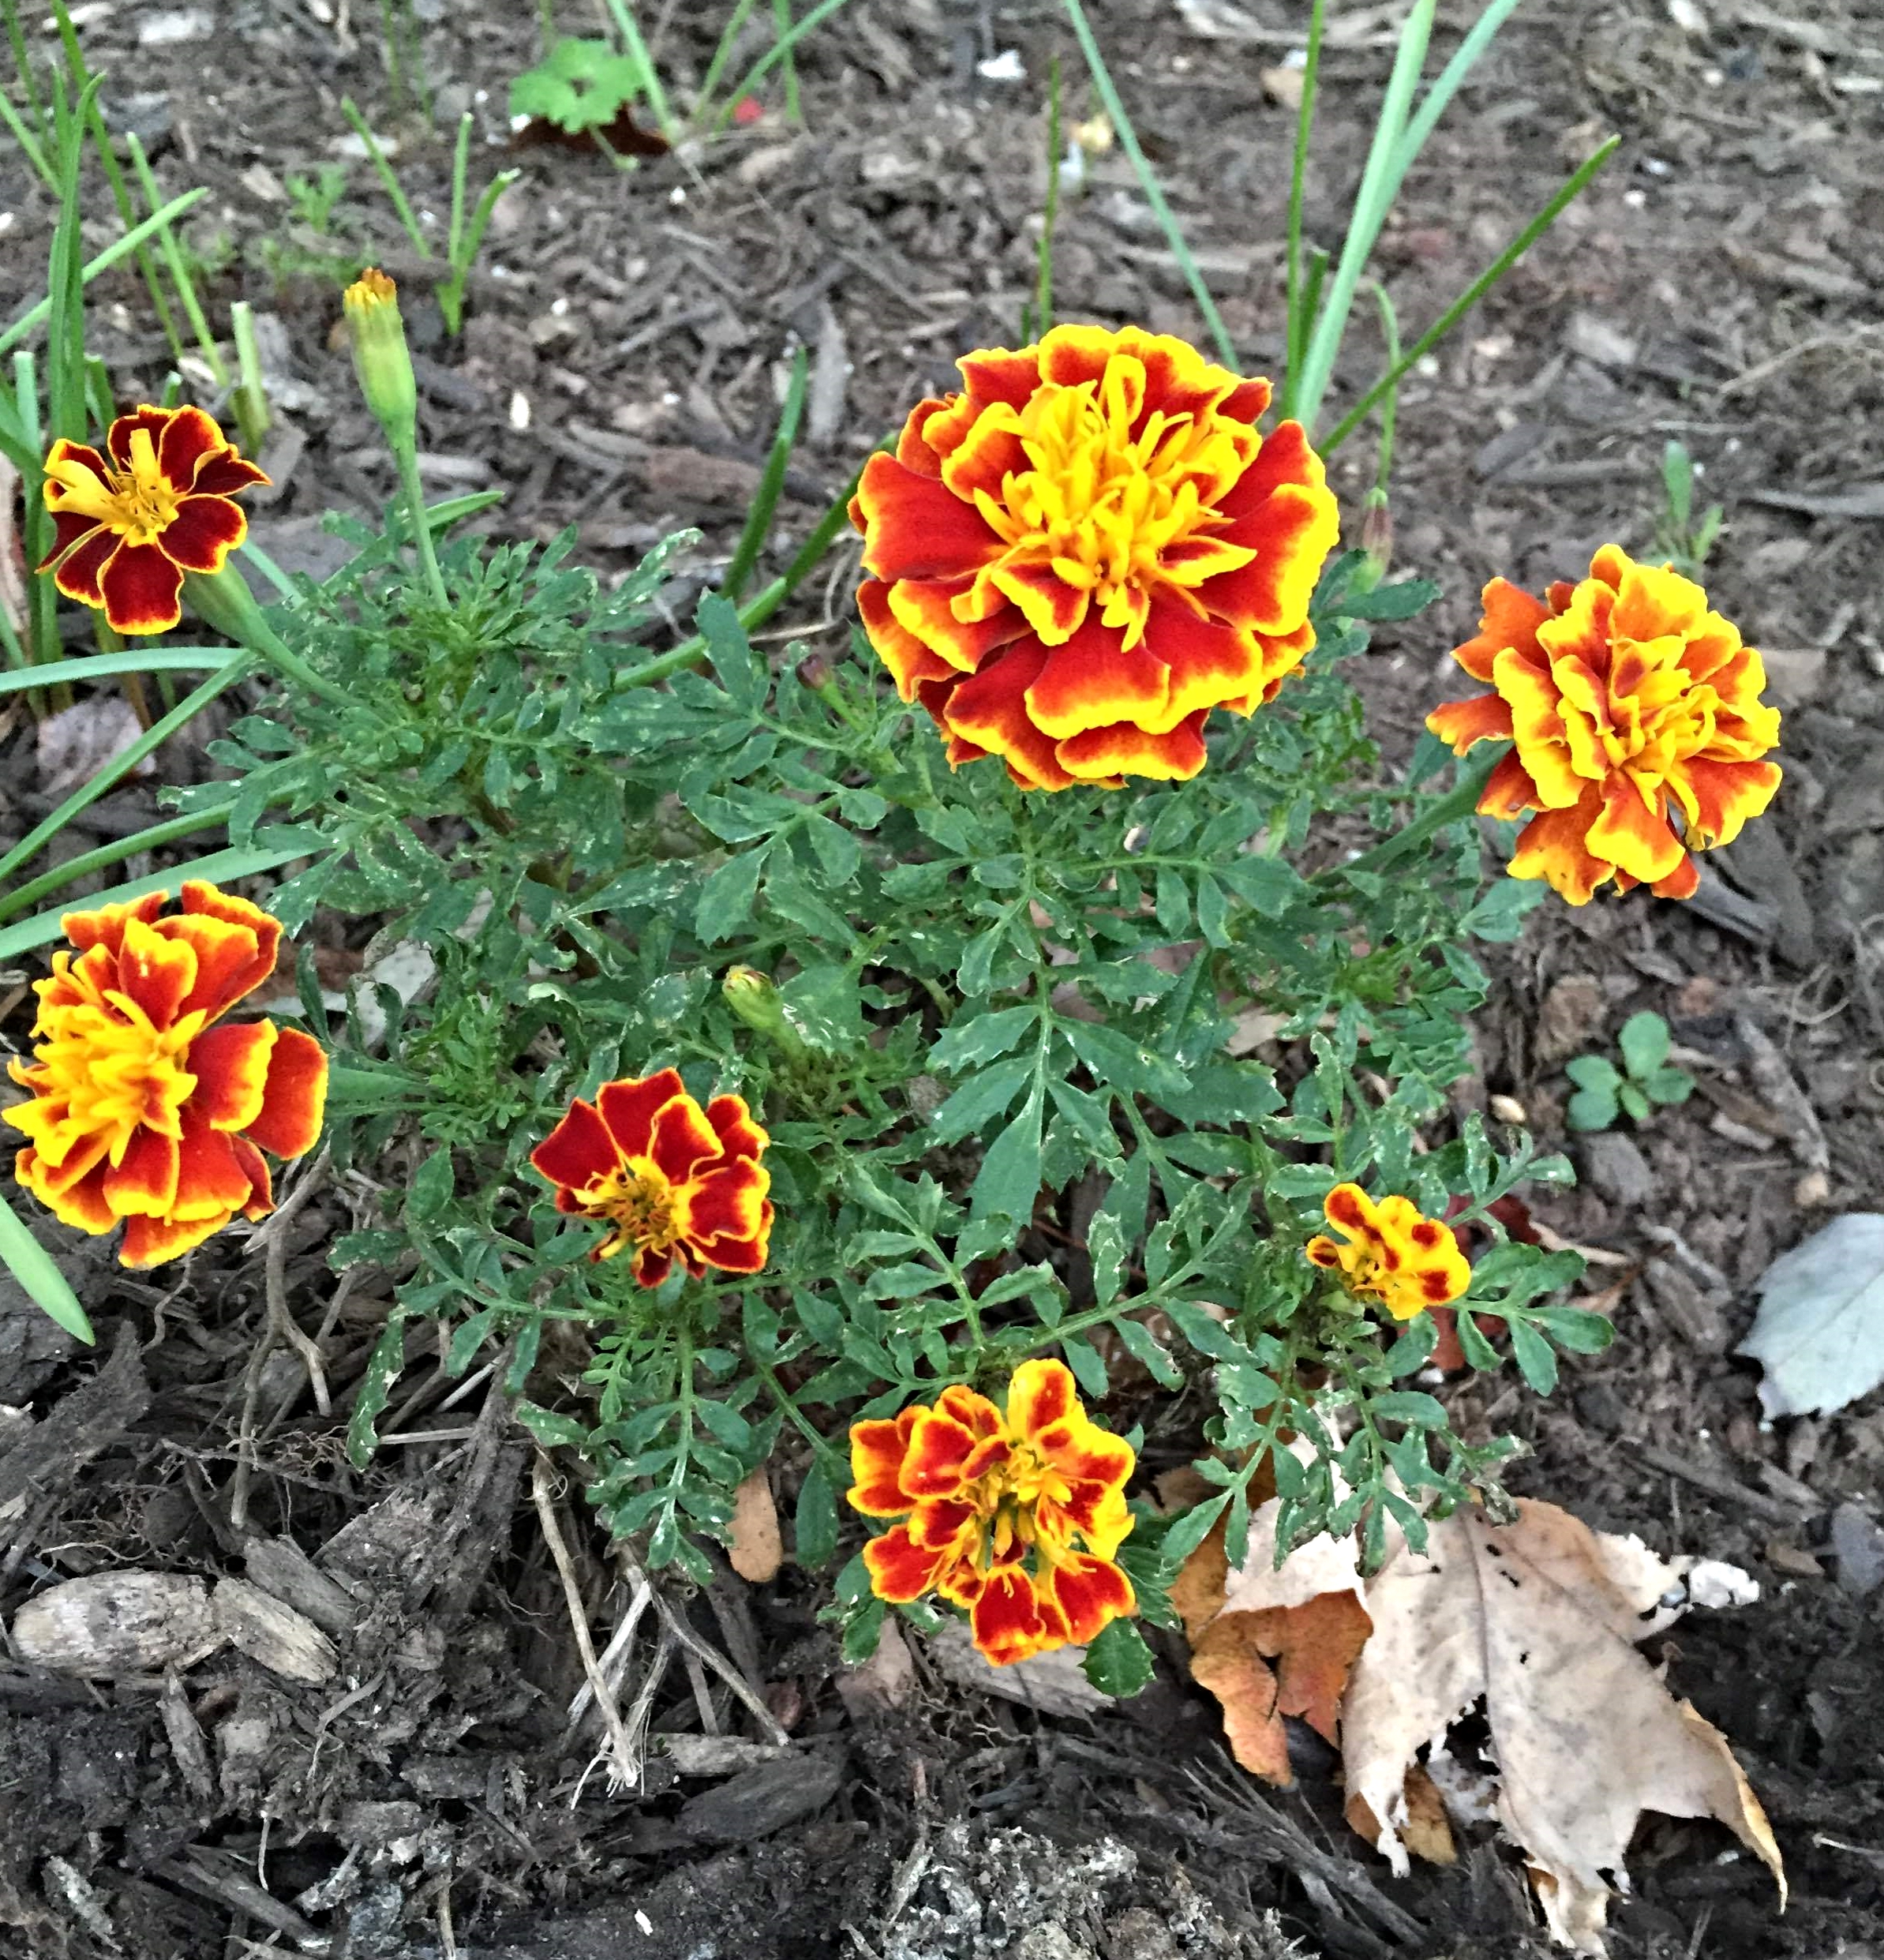 The marigolds returned to life to display their vibrant colors.